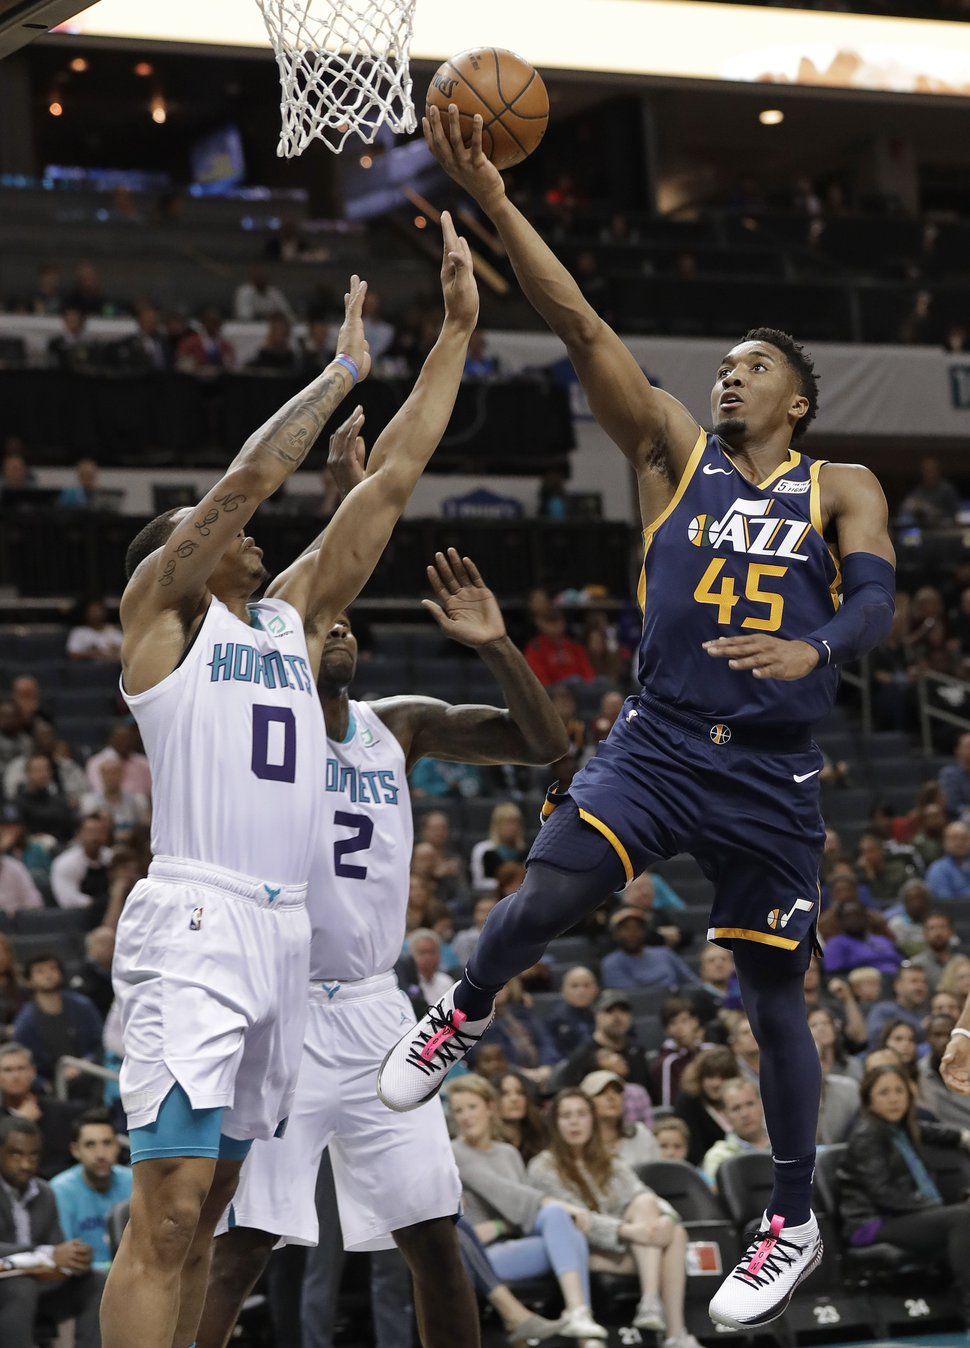 Utah Jazz's Donovan Mitchell (45) drives against Charlotte Hornets' Miles Bridges (0) during the first half of an NBA basketball game in Charlotte, N.C., Friday, Nov. 30, 2018. (AP Photo/Chuck Burton)